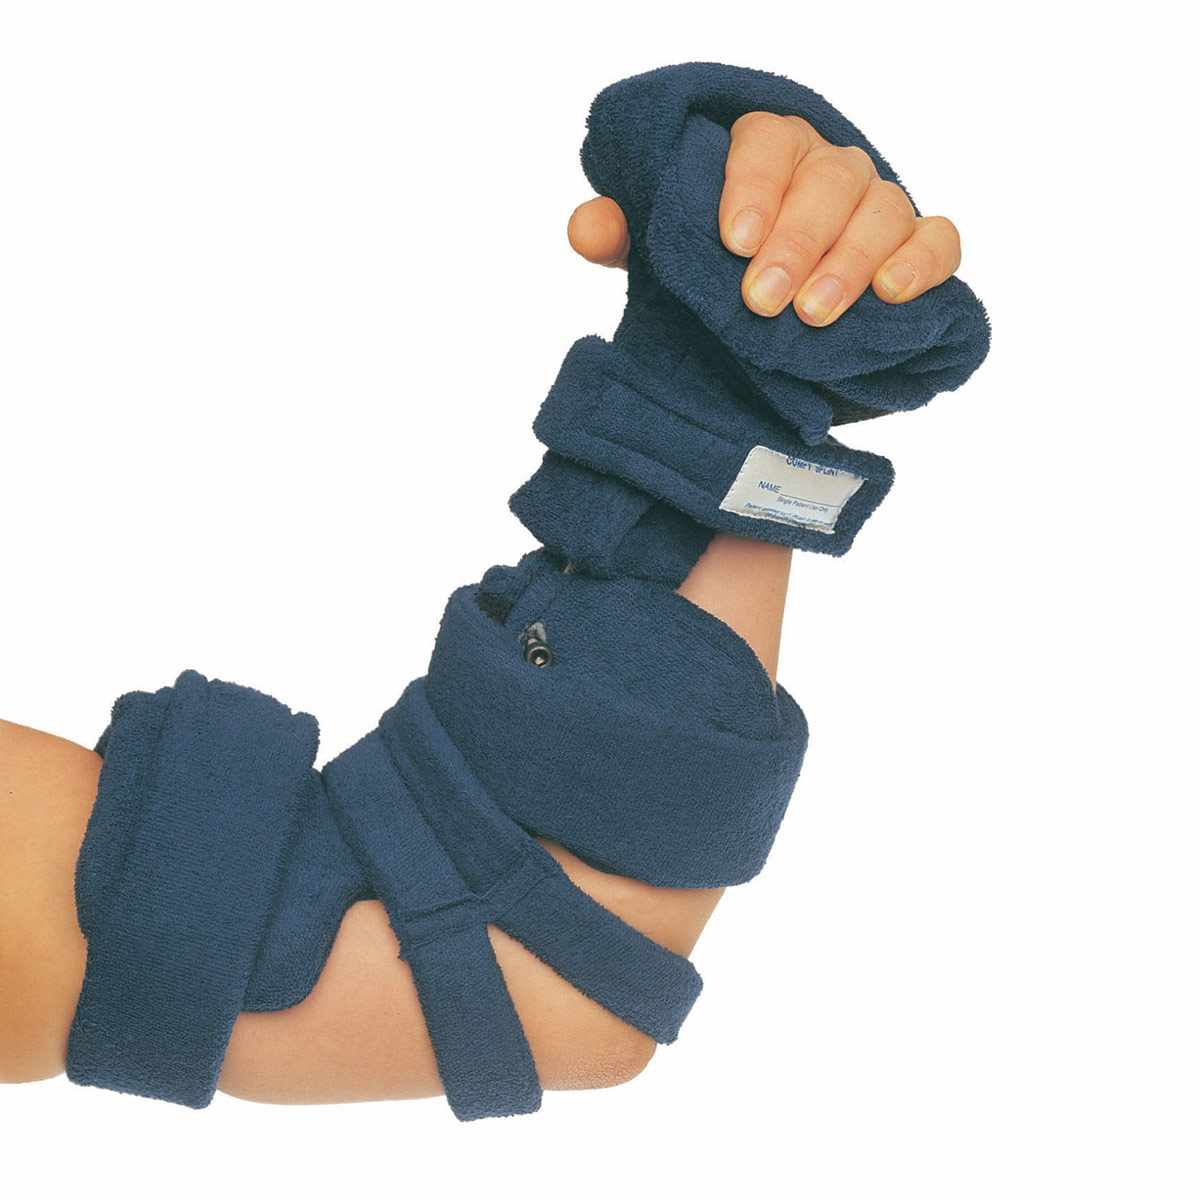 Comfy Elbow and Hand Thumb Orthosis